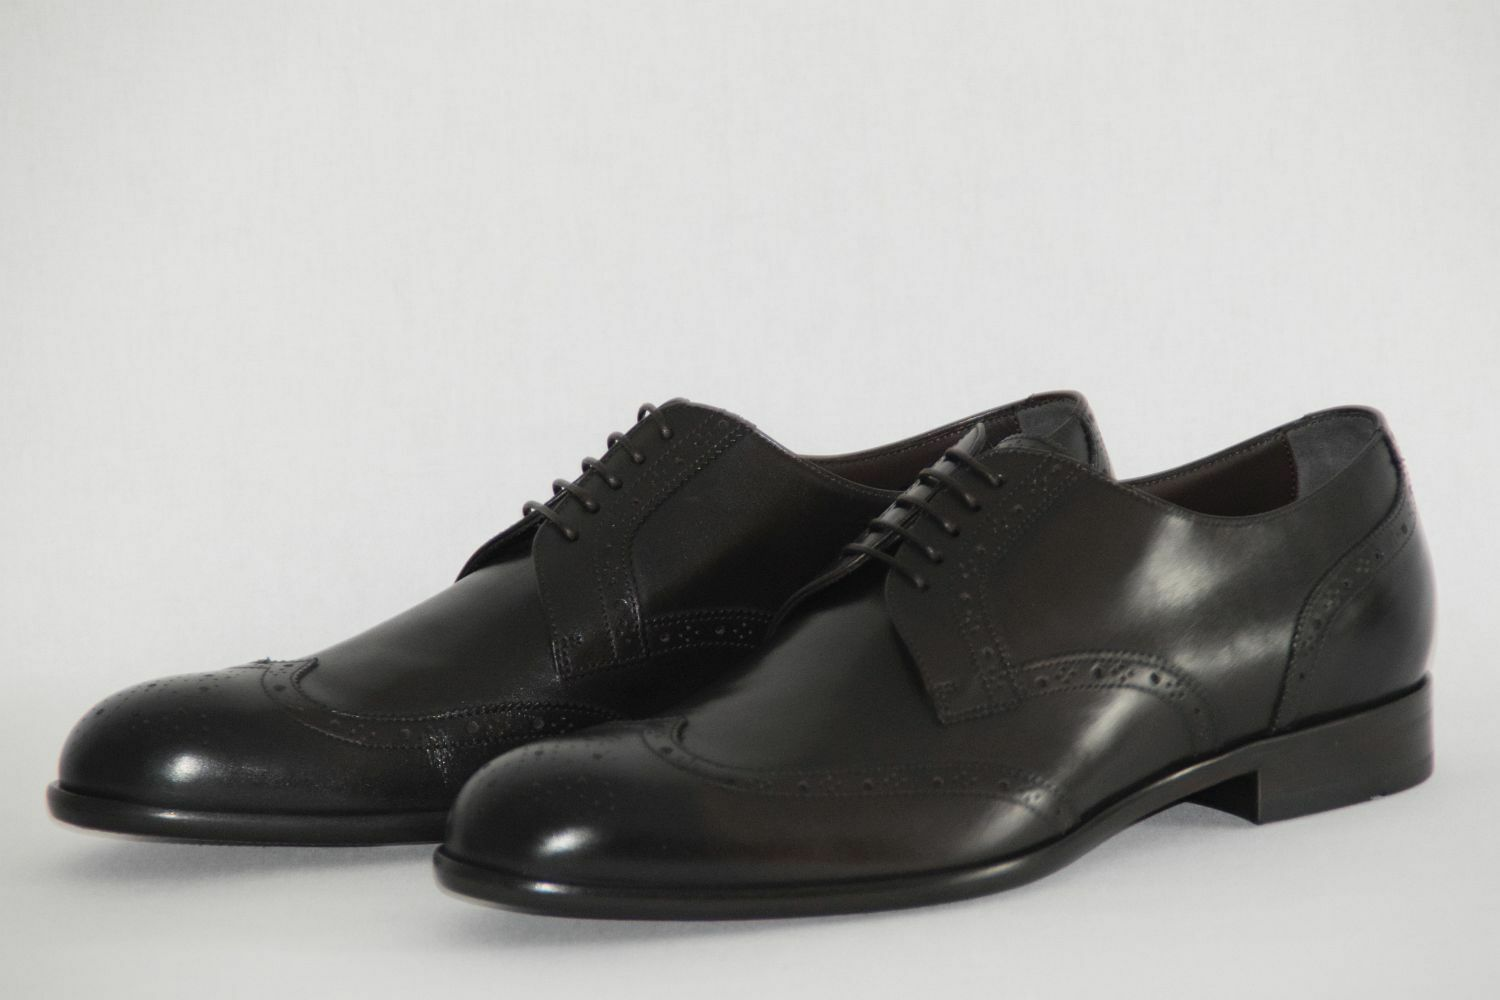 HUGO BOSS Business Chaussures, in Taille UE 42//US 9, Made in Chaussures, Italy, Dark Brown 9b28a1